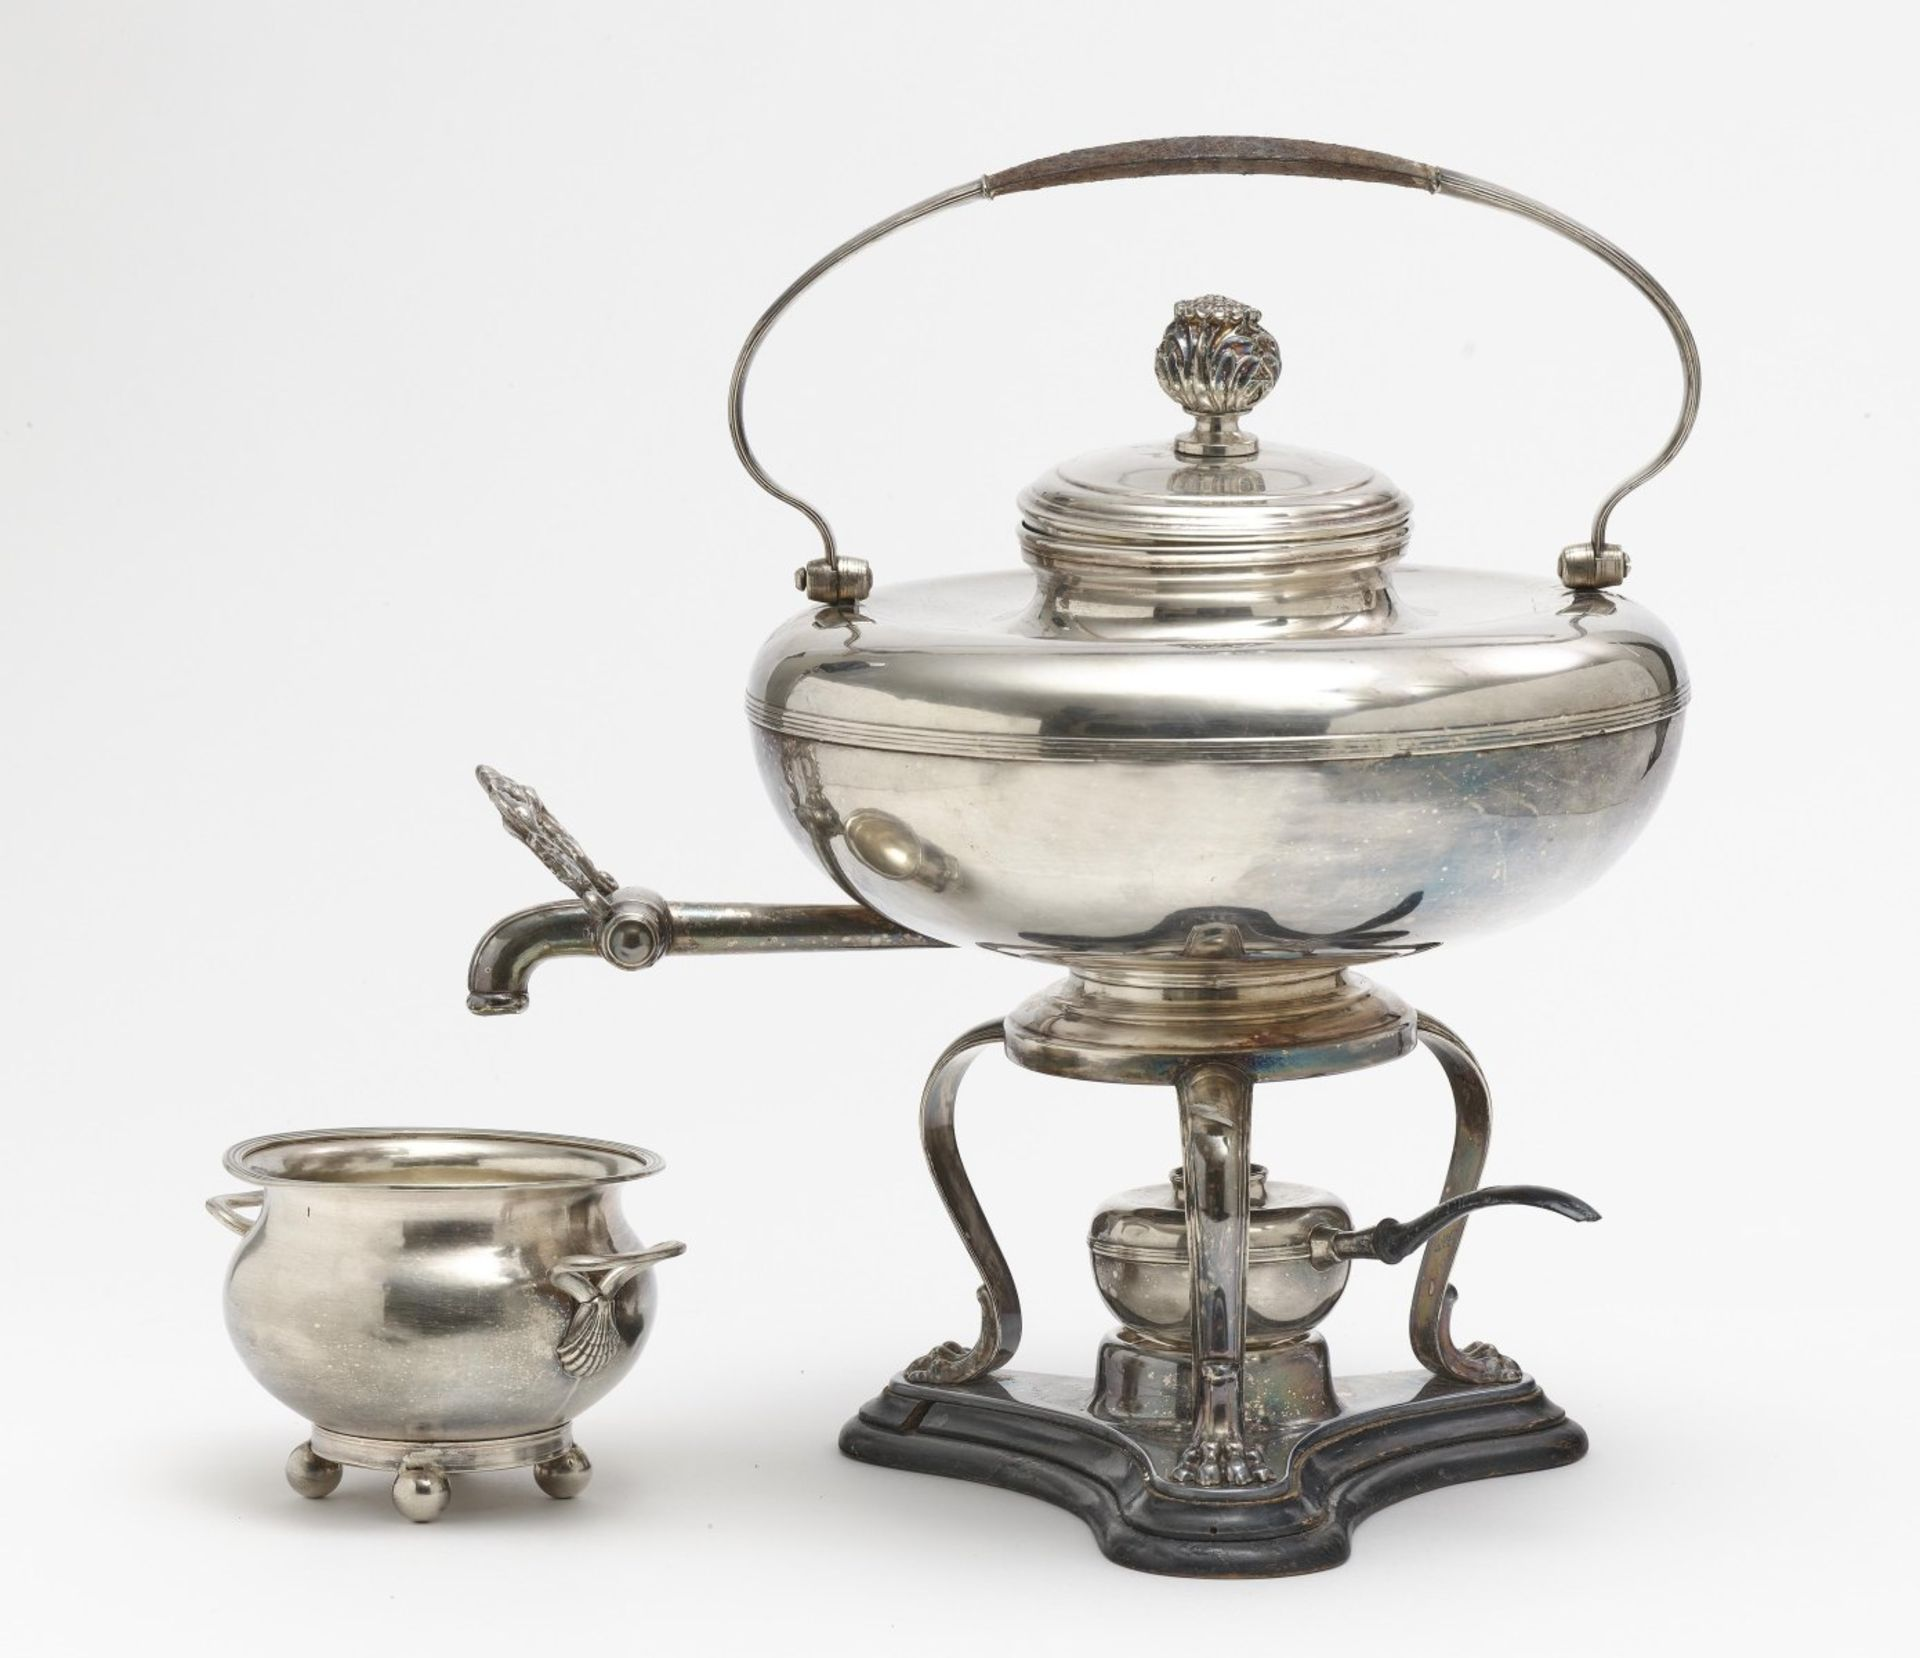 A kettle with réchaud and sugar bowl